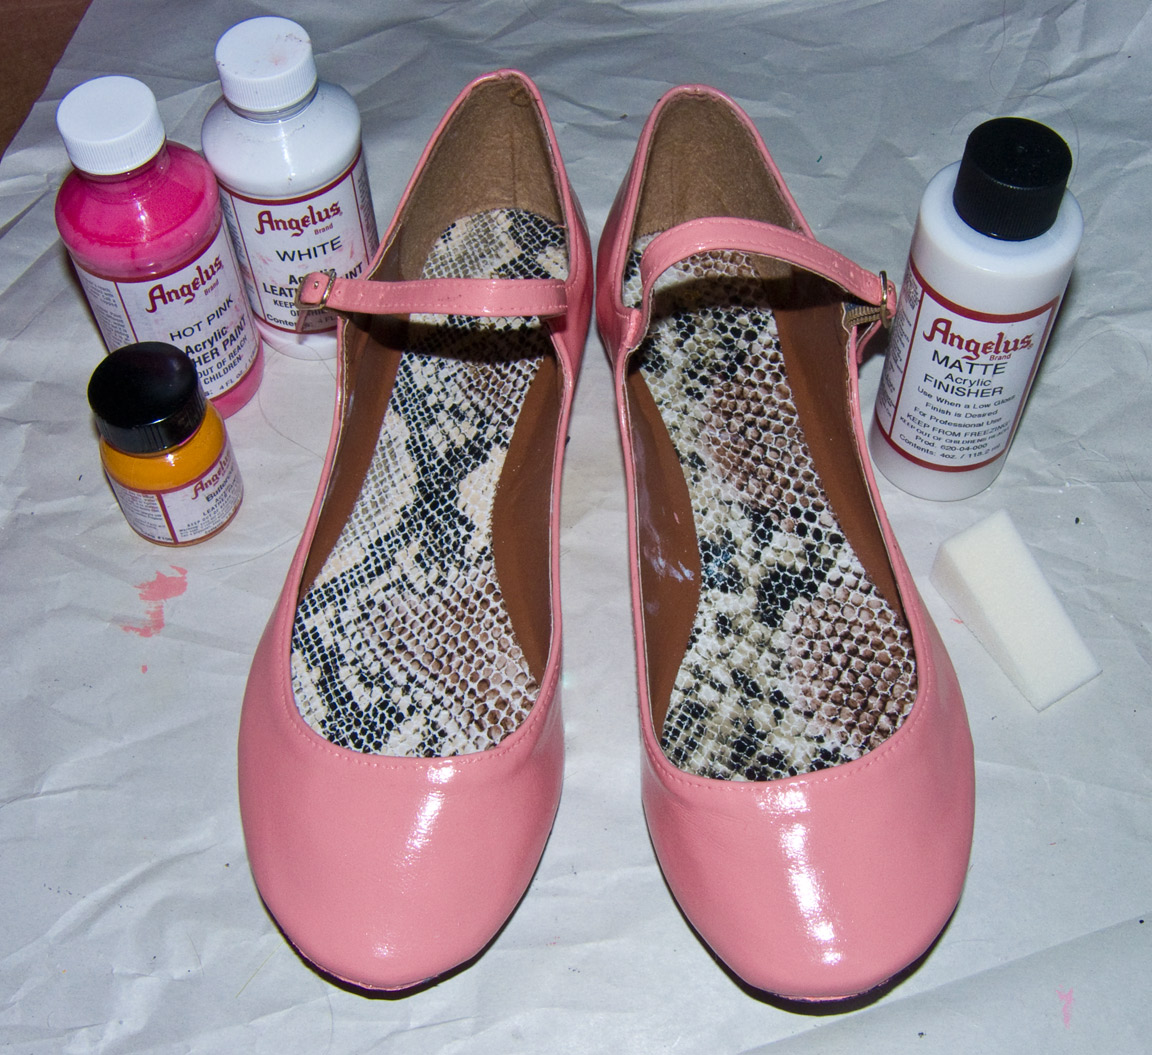 Can You Paint Leather Shoes With Nail Polish